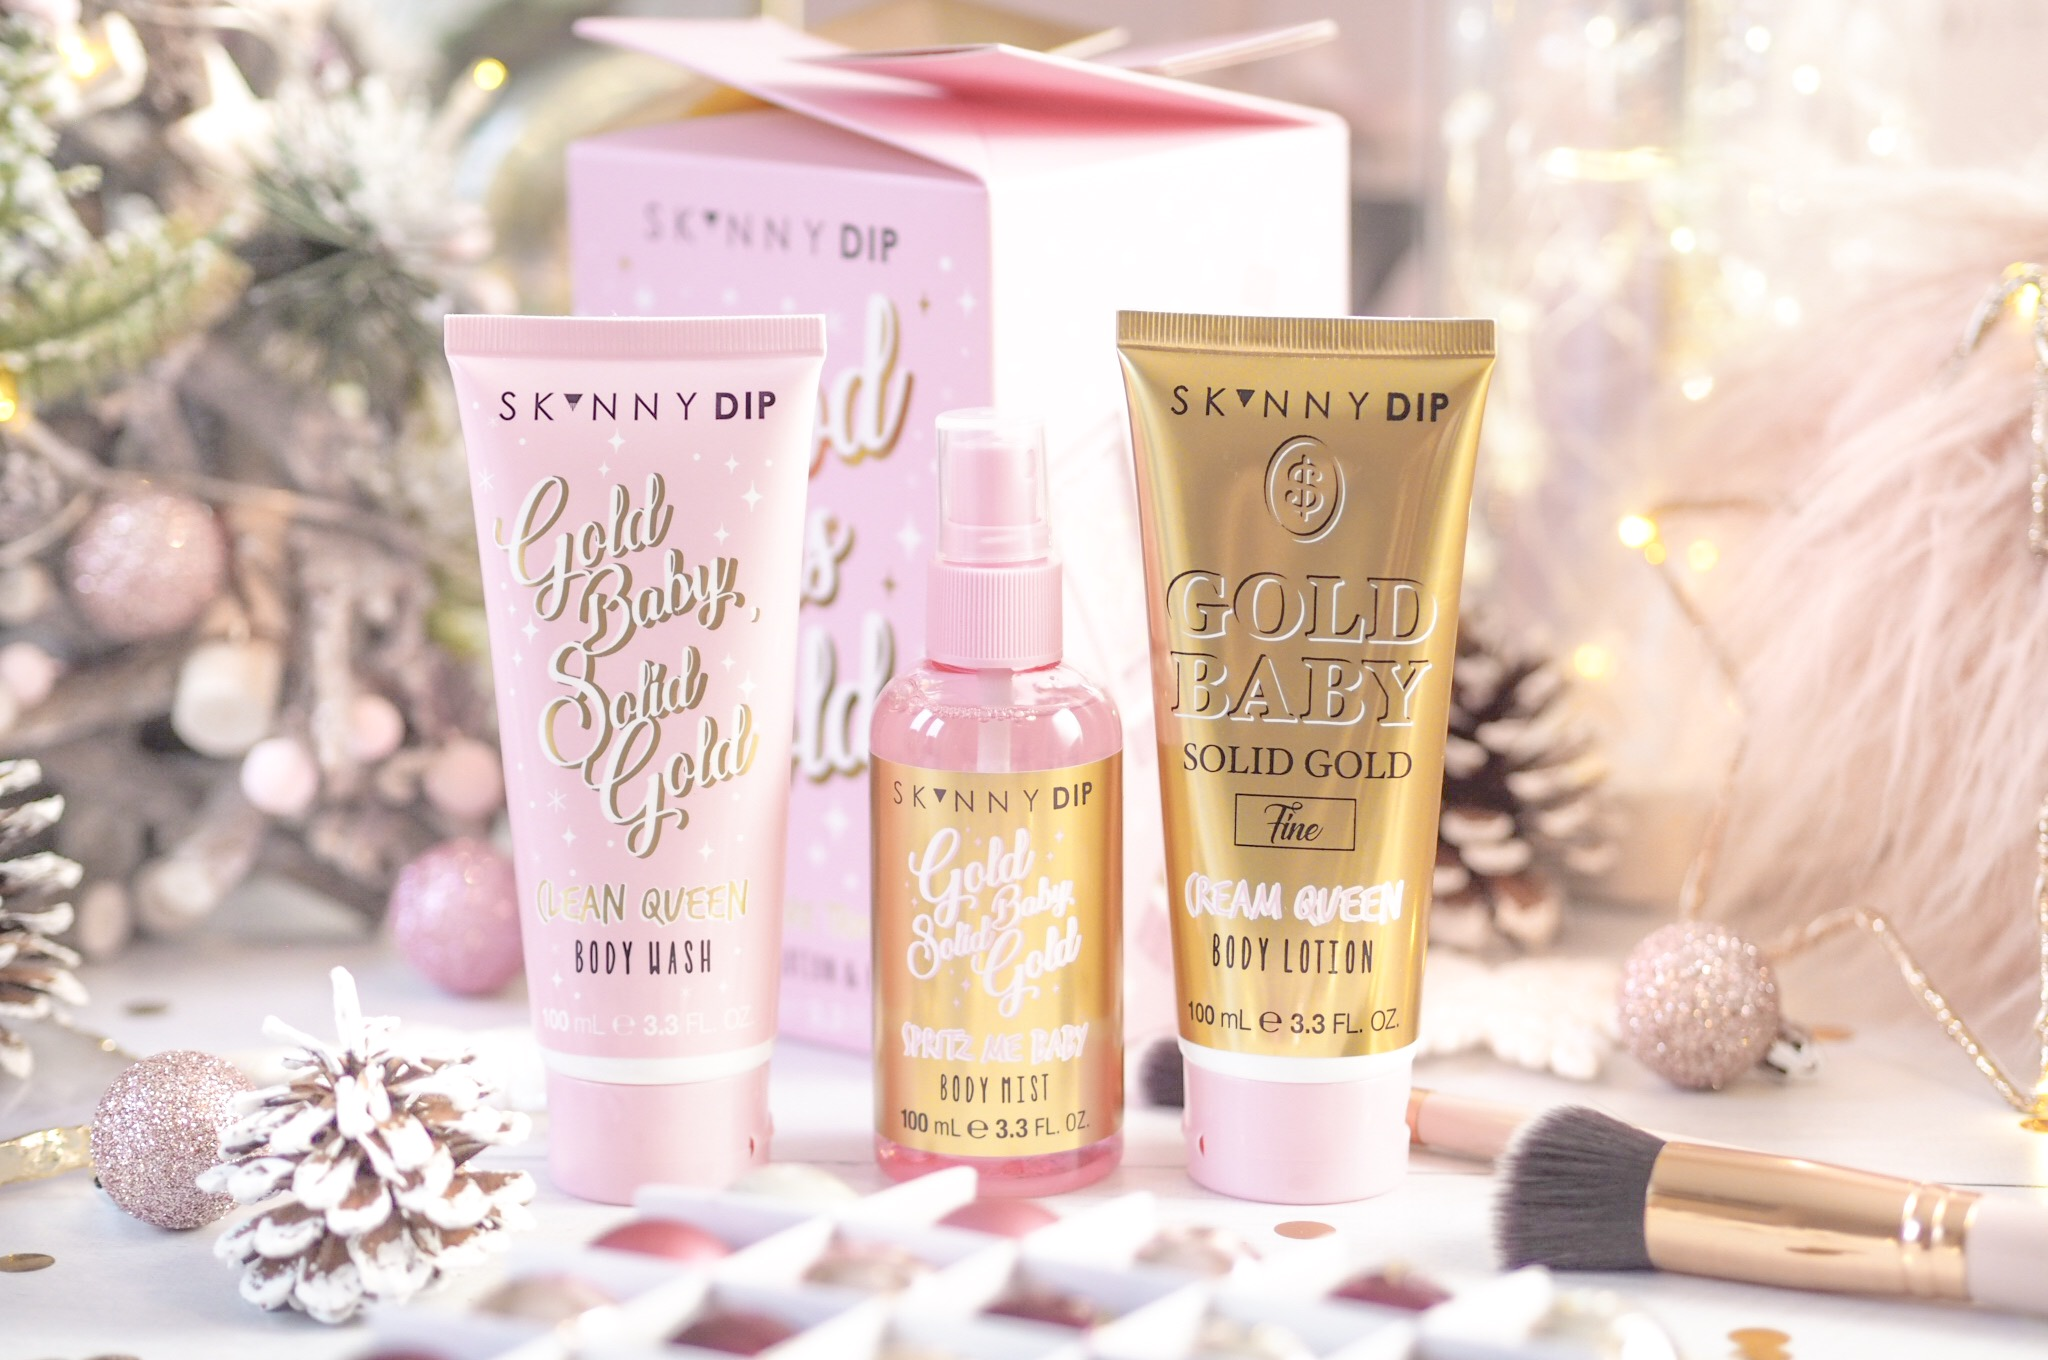 Skinnydip Good As Gold Body Care Trio.